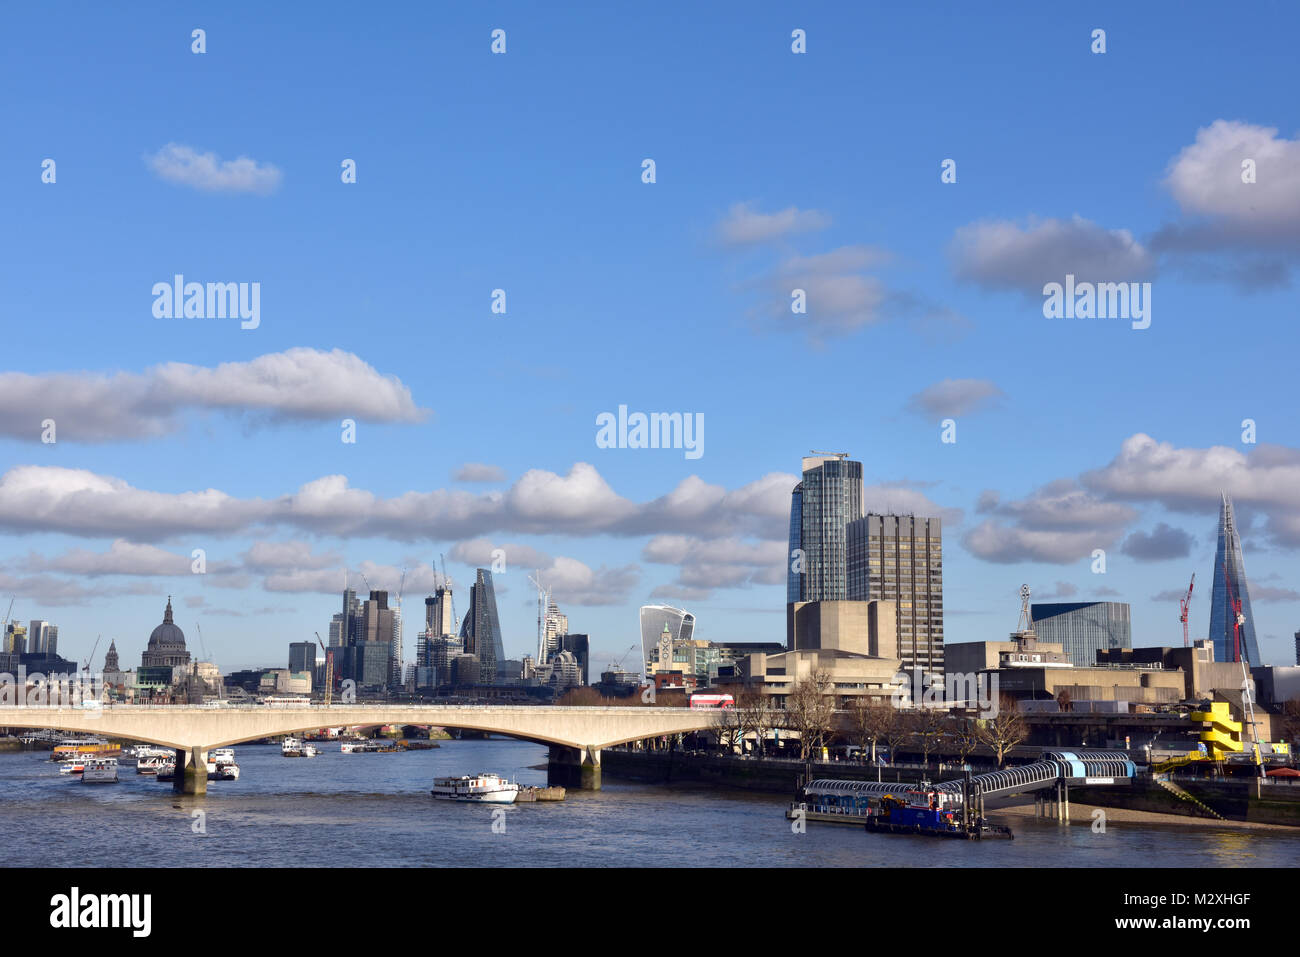 The London city skyline on a clear winters day with blue sky and clouds. Iconic buildings and architecture including - Stock Image